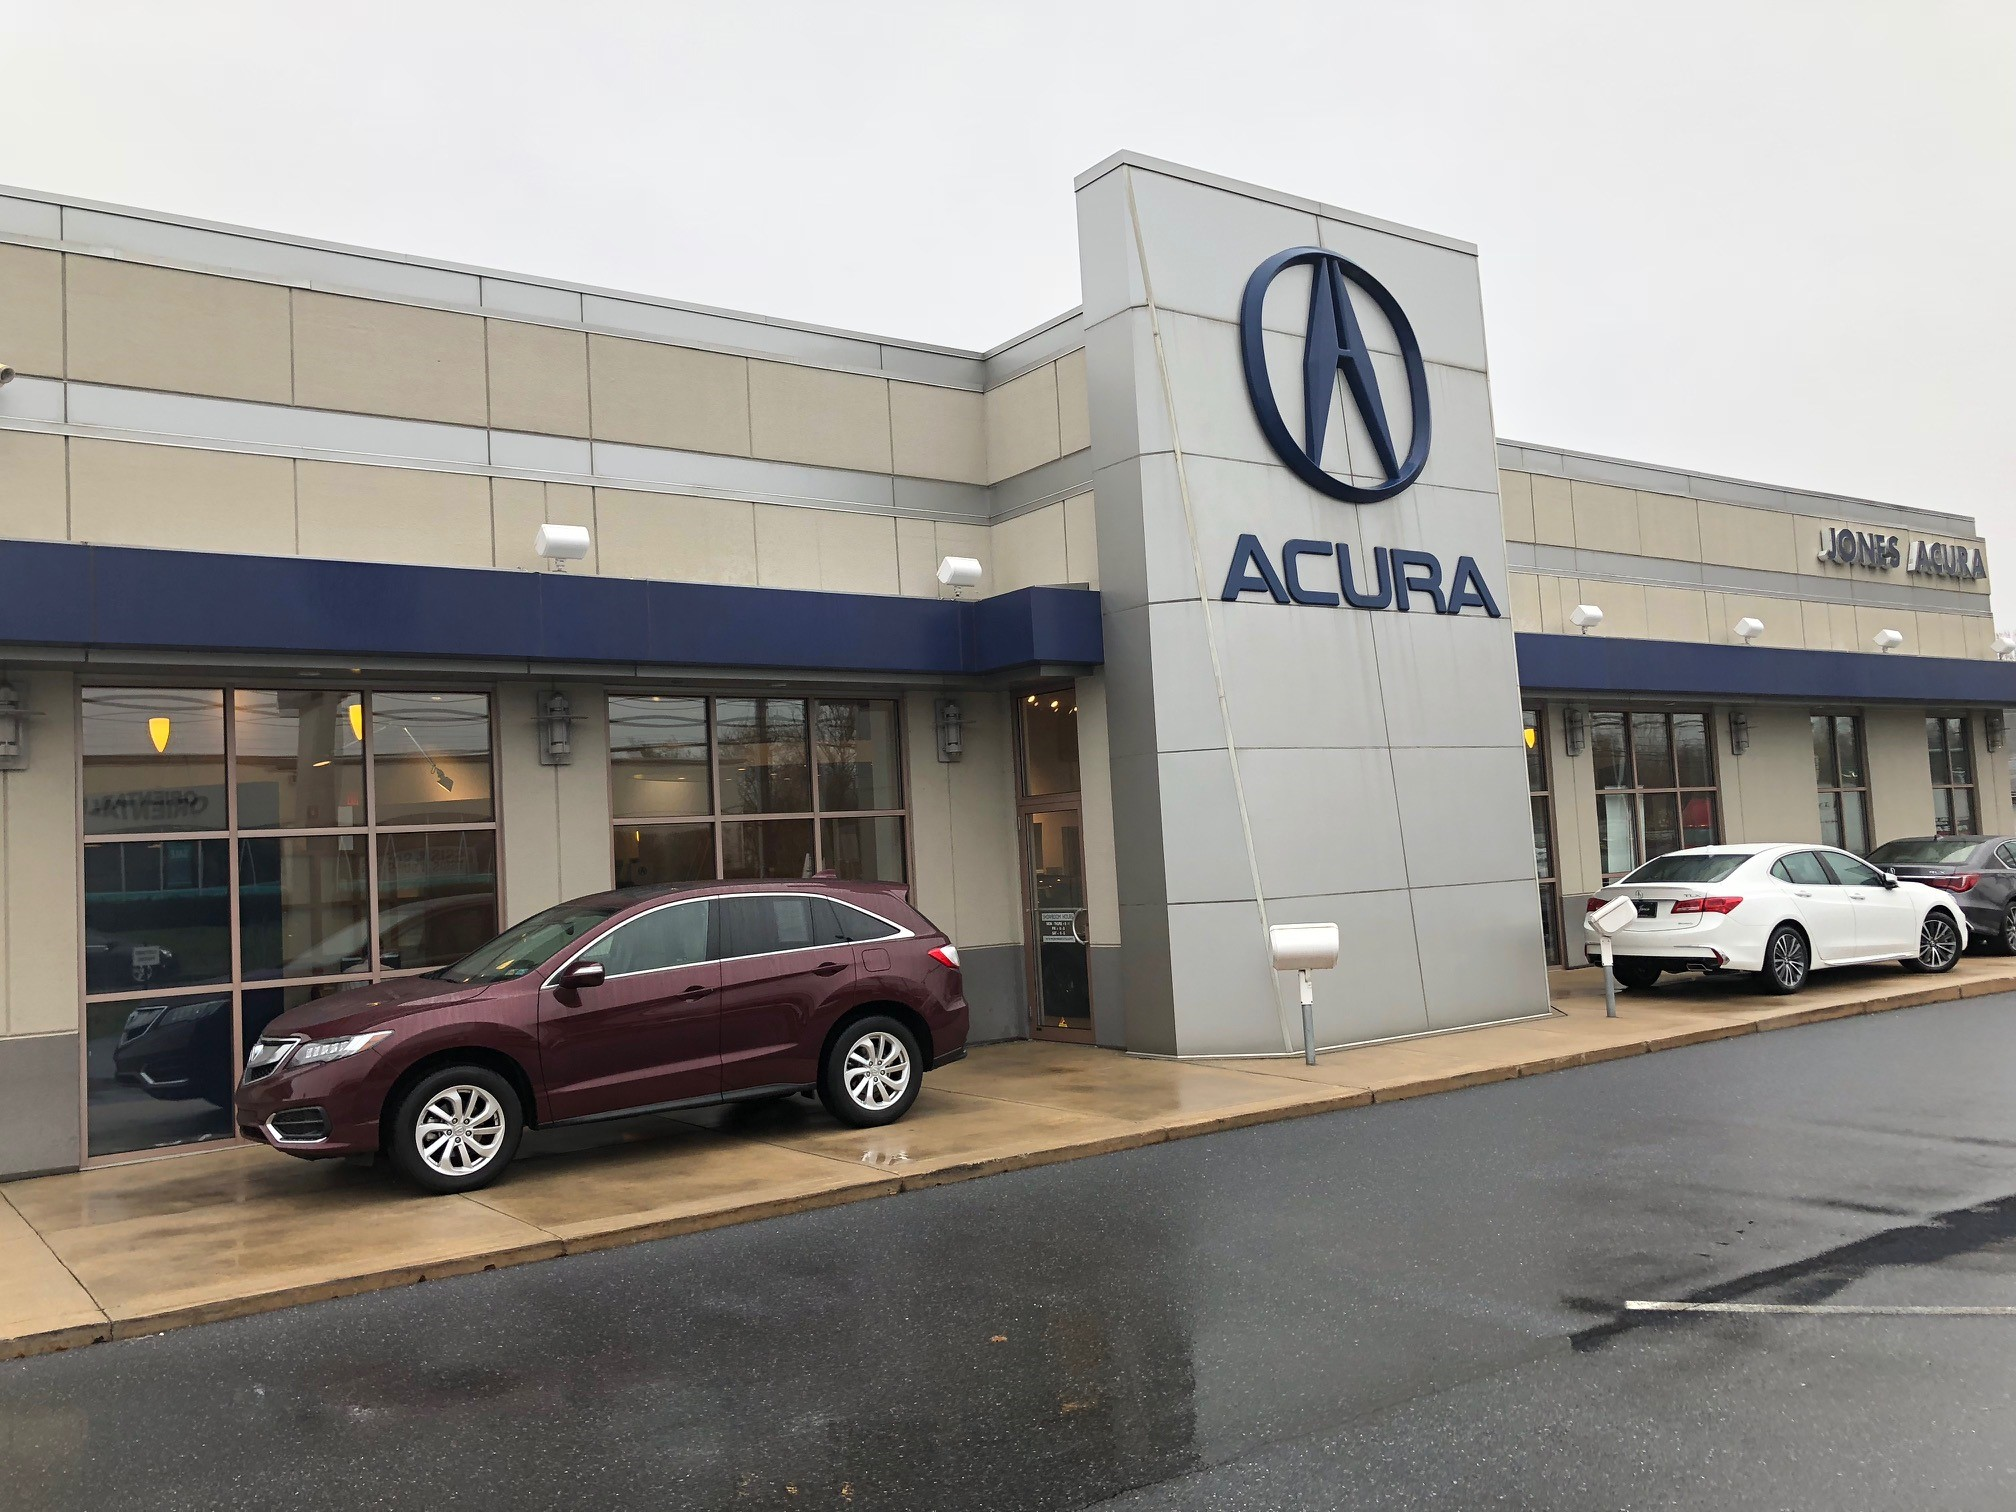 Jones Acura New Acura Dealership In Lancaster PA - Acura dealers in pa